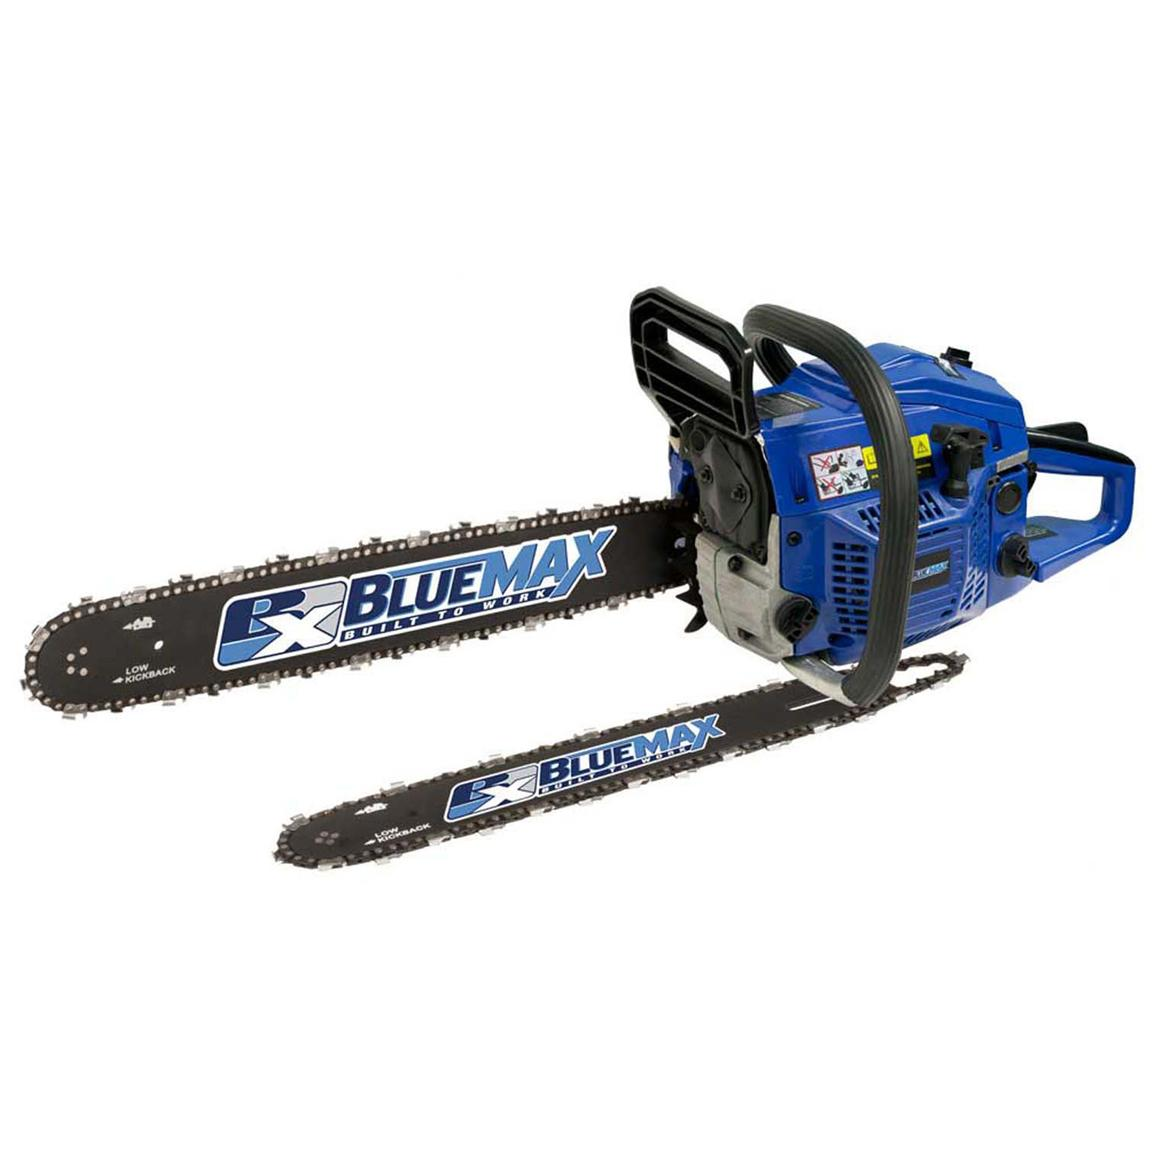 Blue Max® 2-in-1 Combination Chainsaw